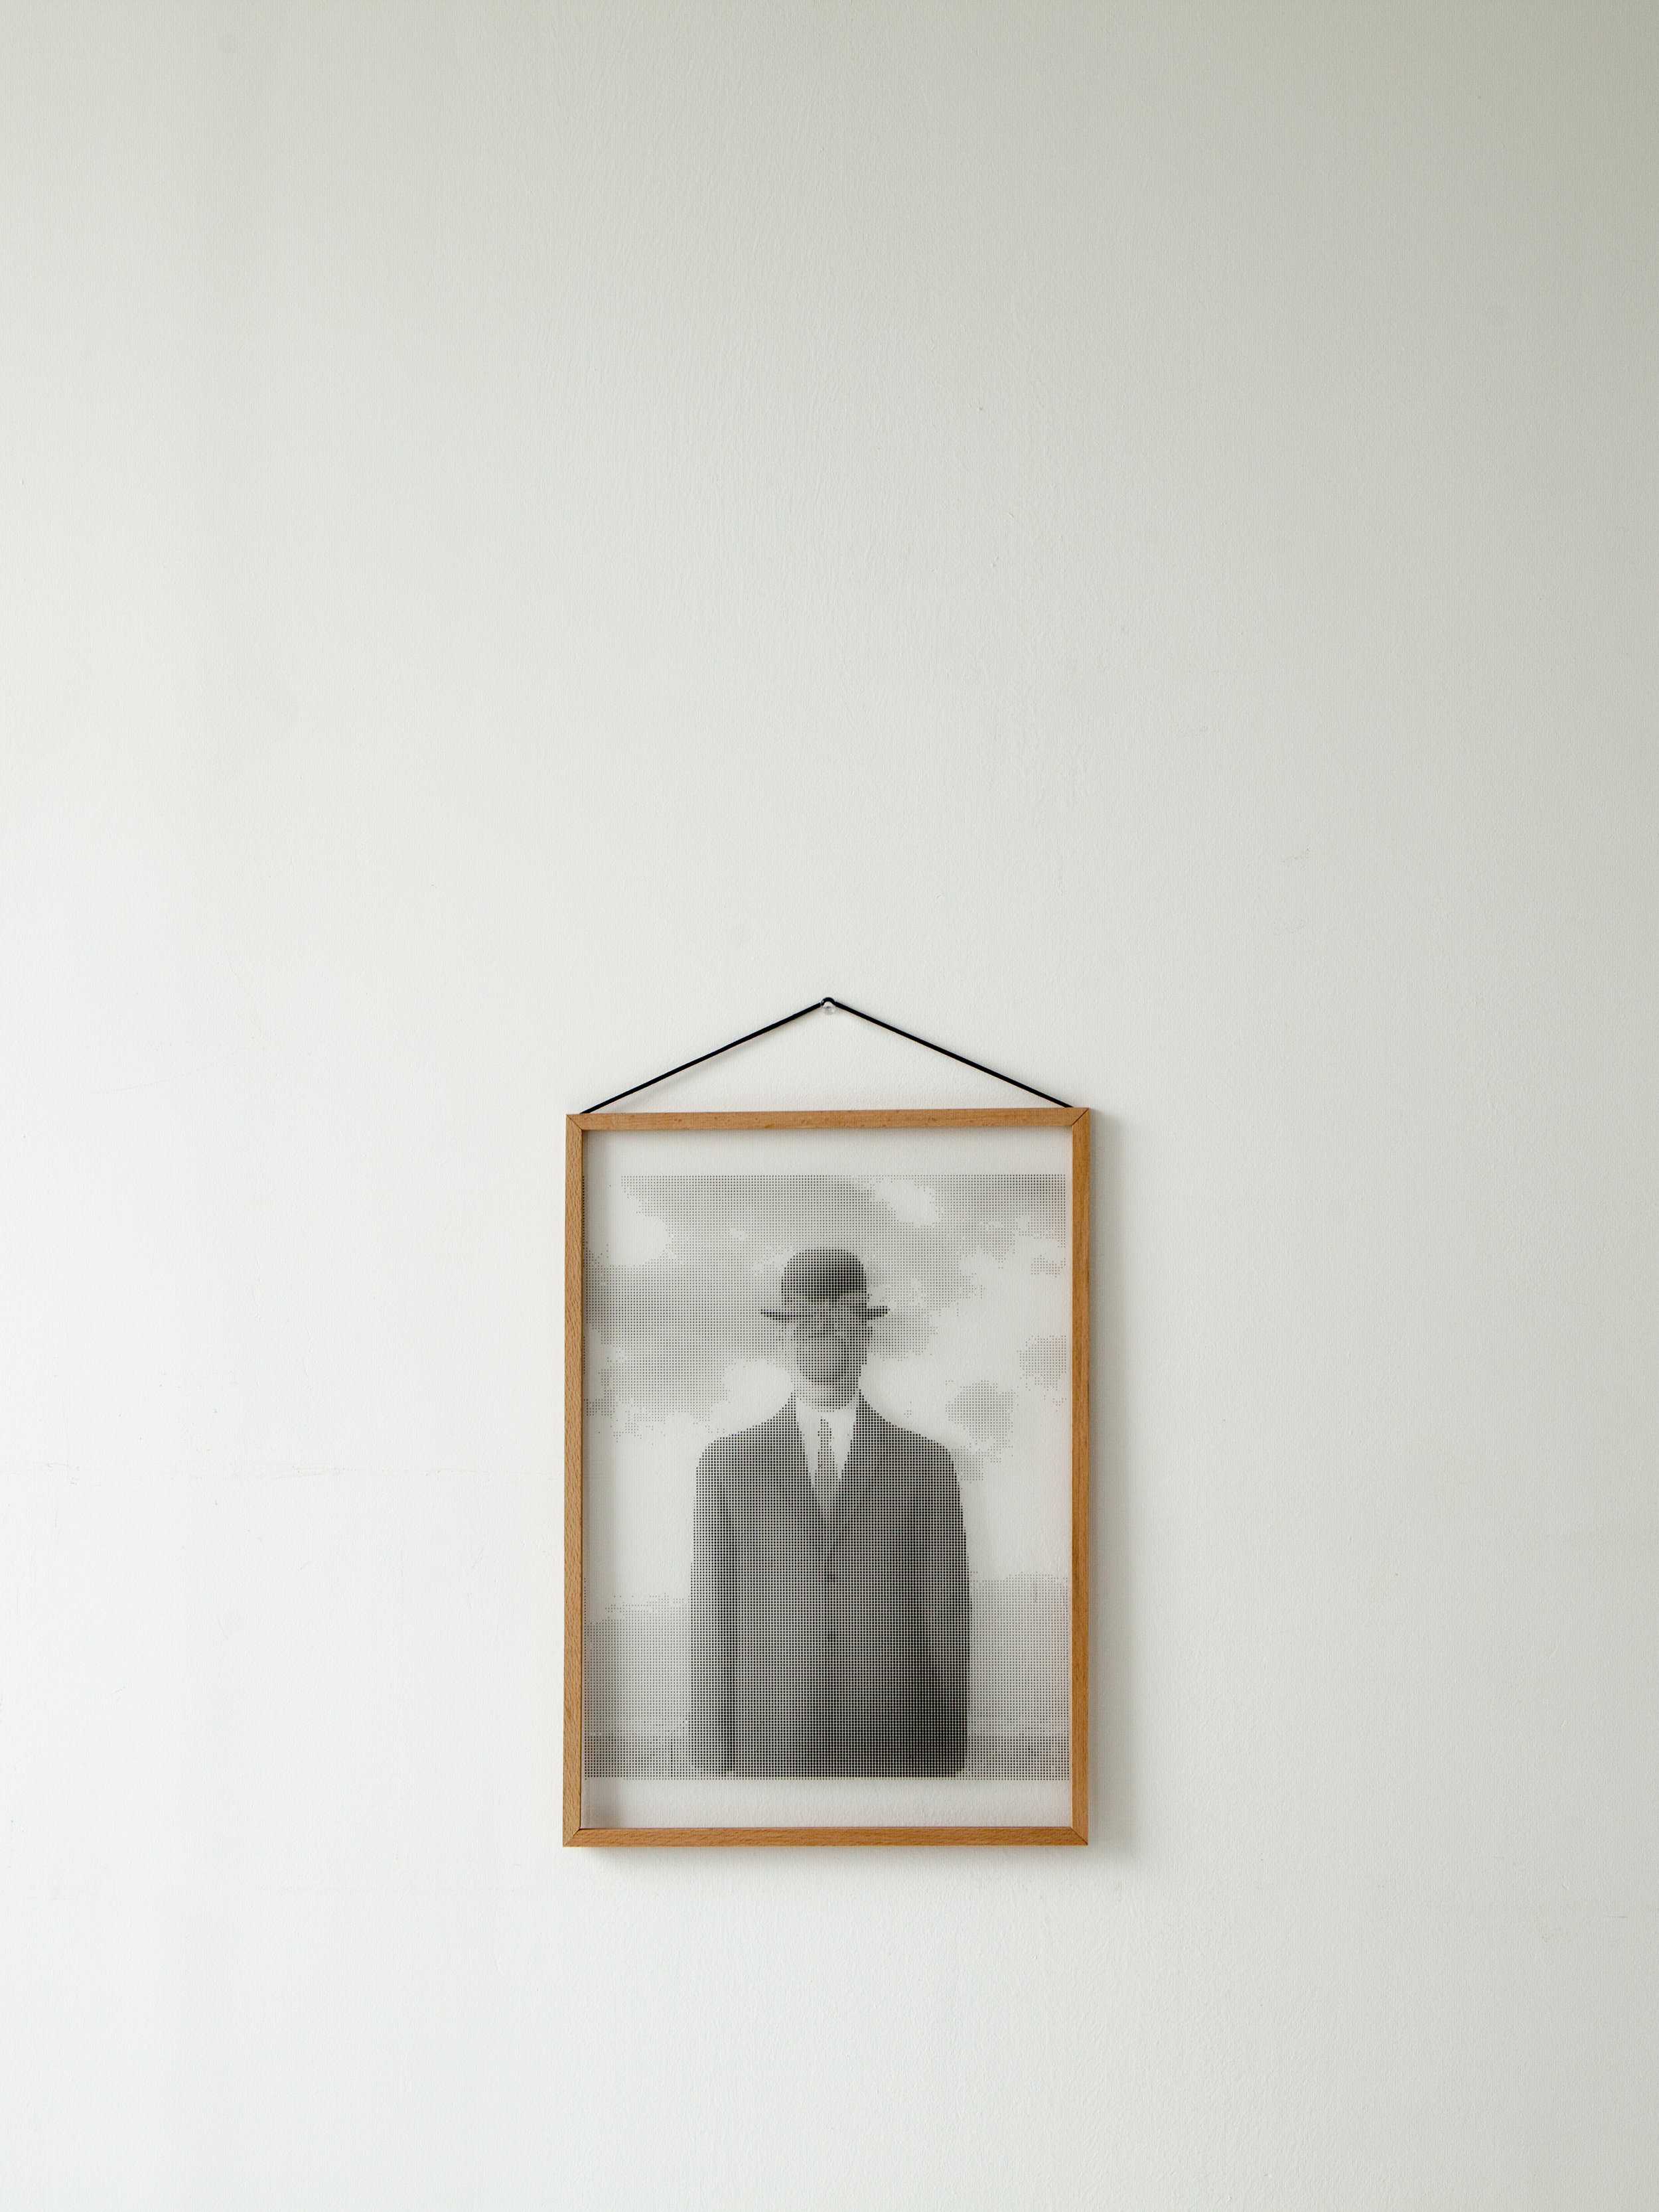 Digitize: The Son of a Man by René Magritte  Digit#: 24,597  Size: A3